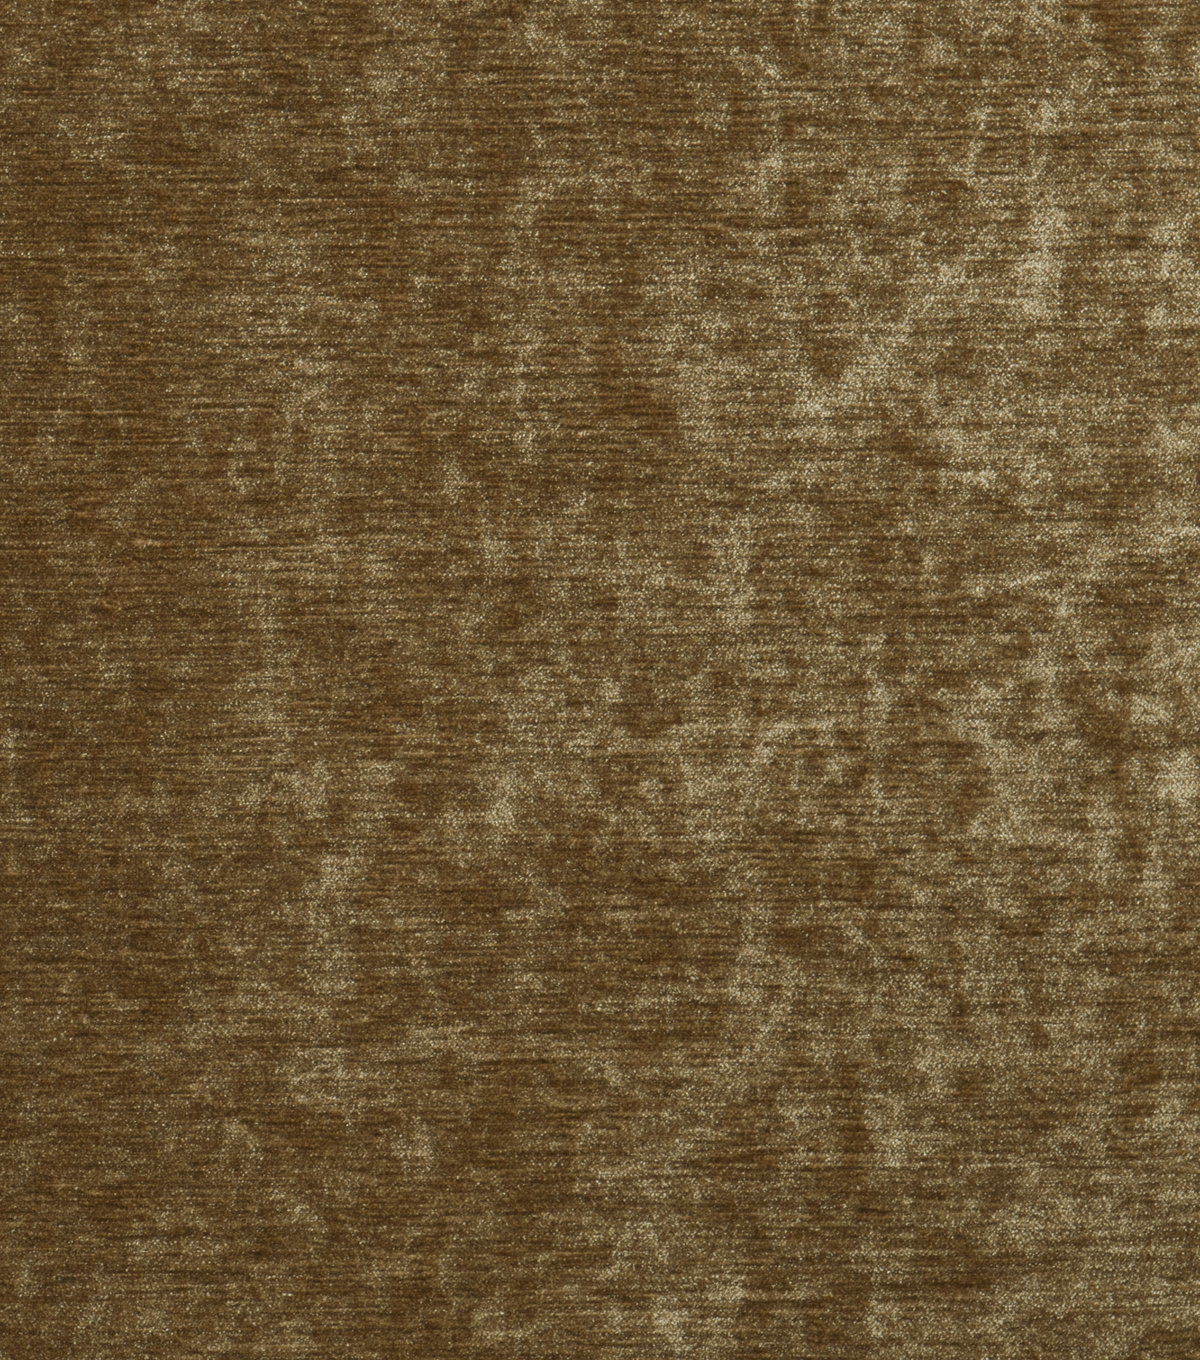 Home Decor 8x8 Fabric Swatch-Eaton Square Lamode Brindle